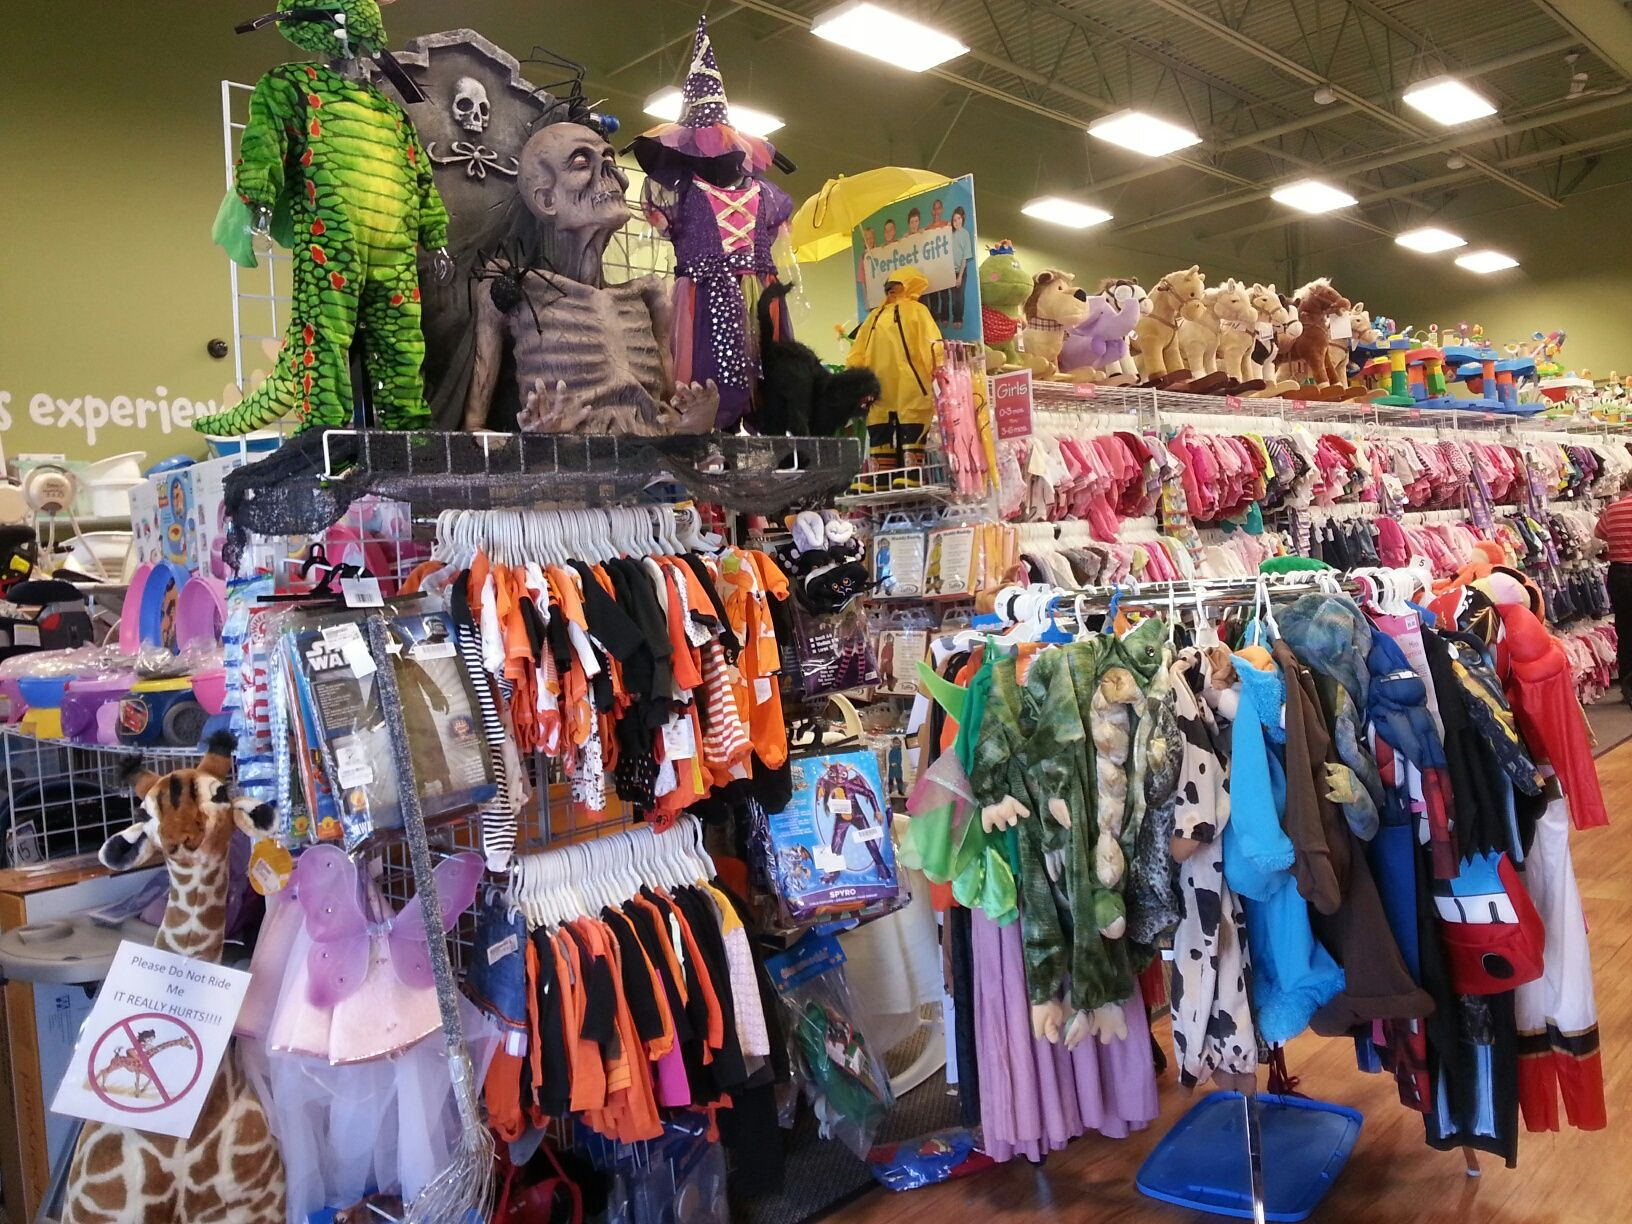 Spooky Halloween Costumes At Once Upon A Child Langley Starting At 3 50 Sell Us Your Used Halloween Co Spooky Halloween Costumes Halloween Costumes Kids Items